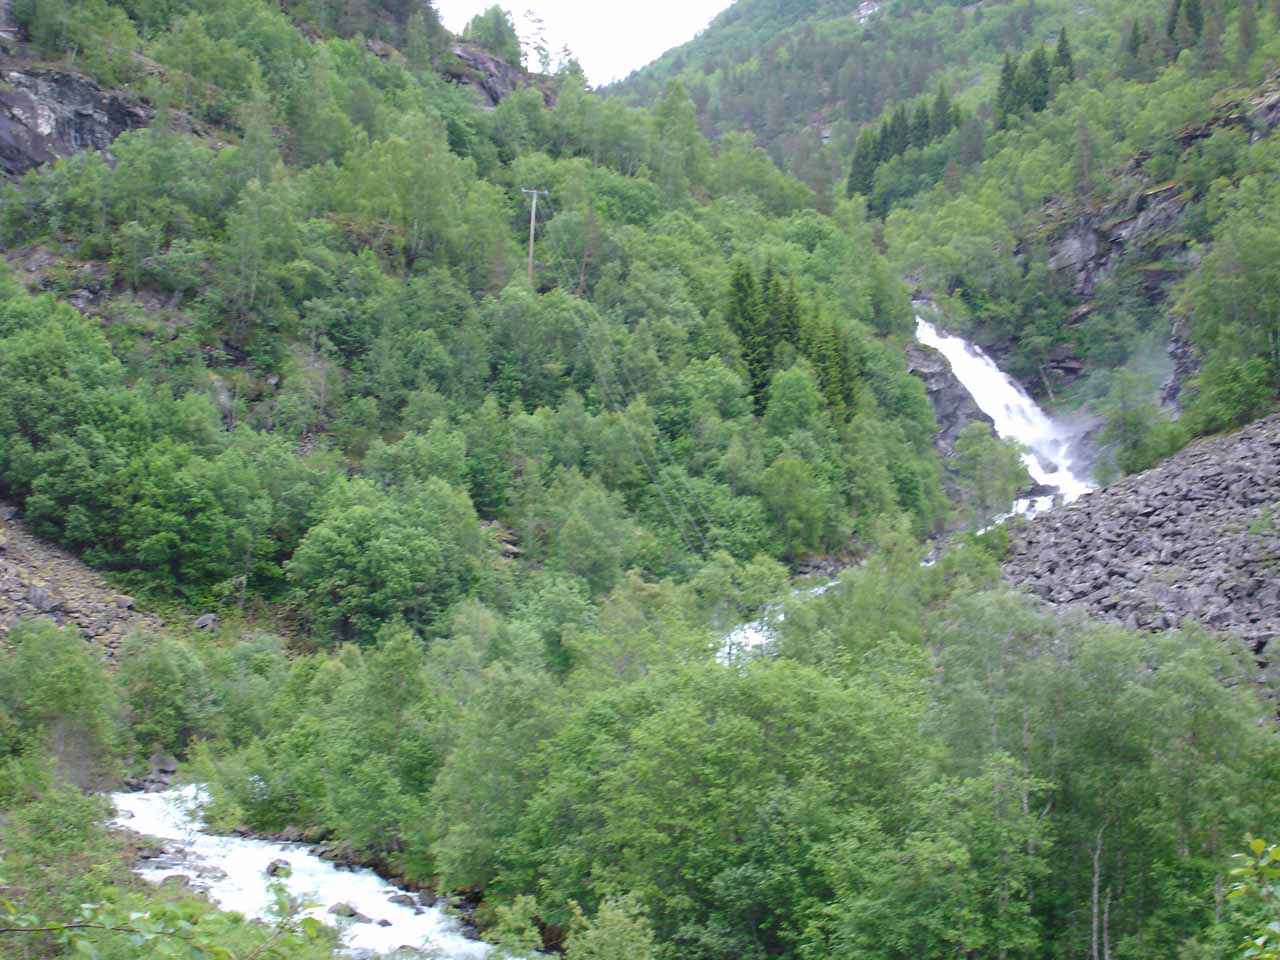 Context of the waterfall shown in the photo above